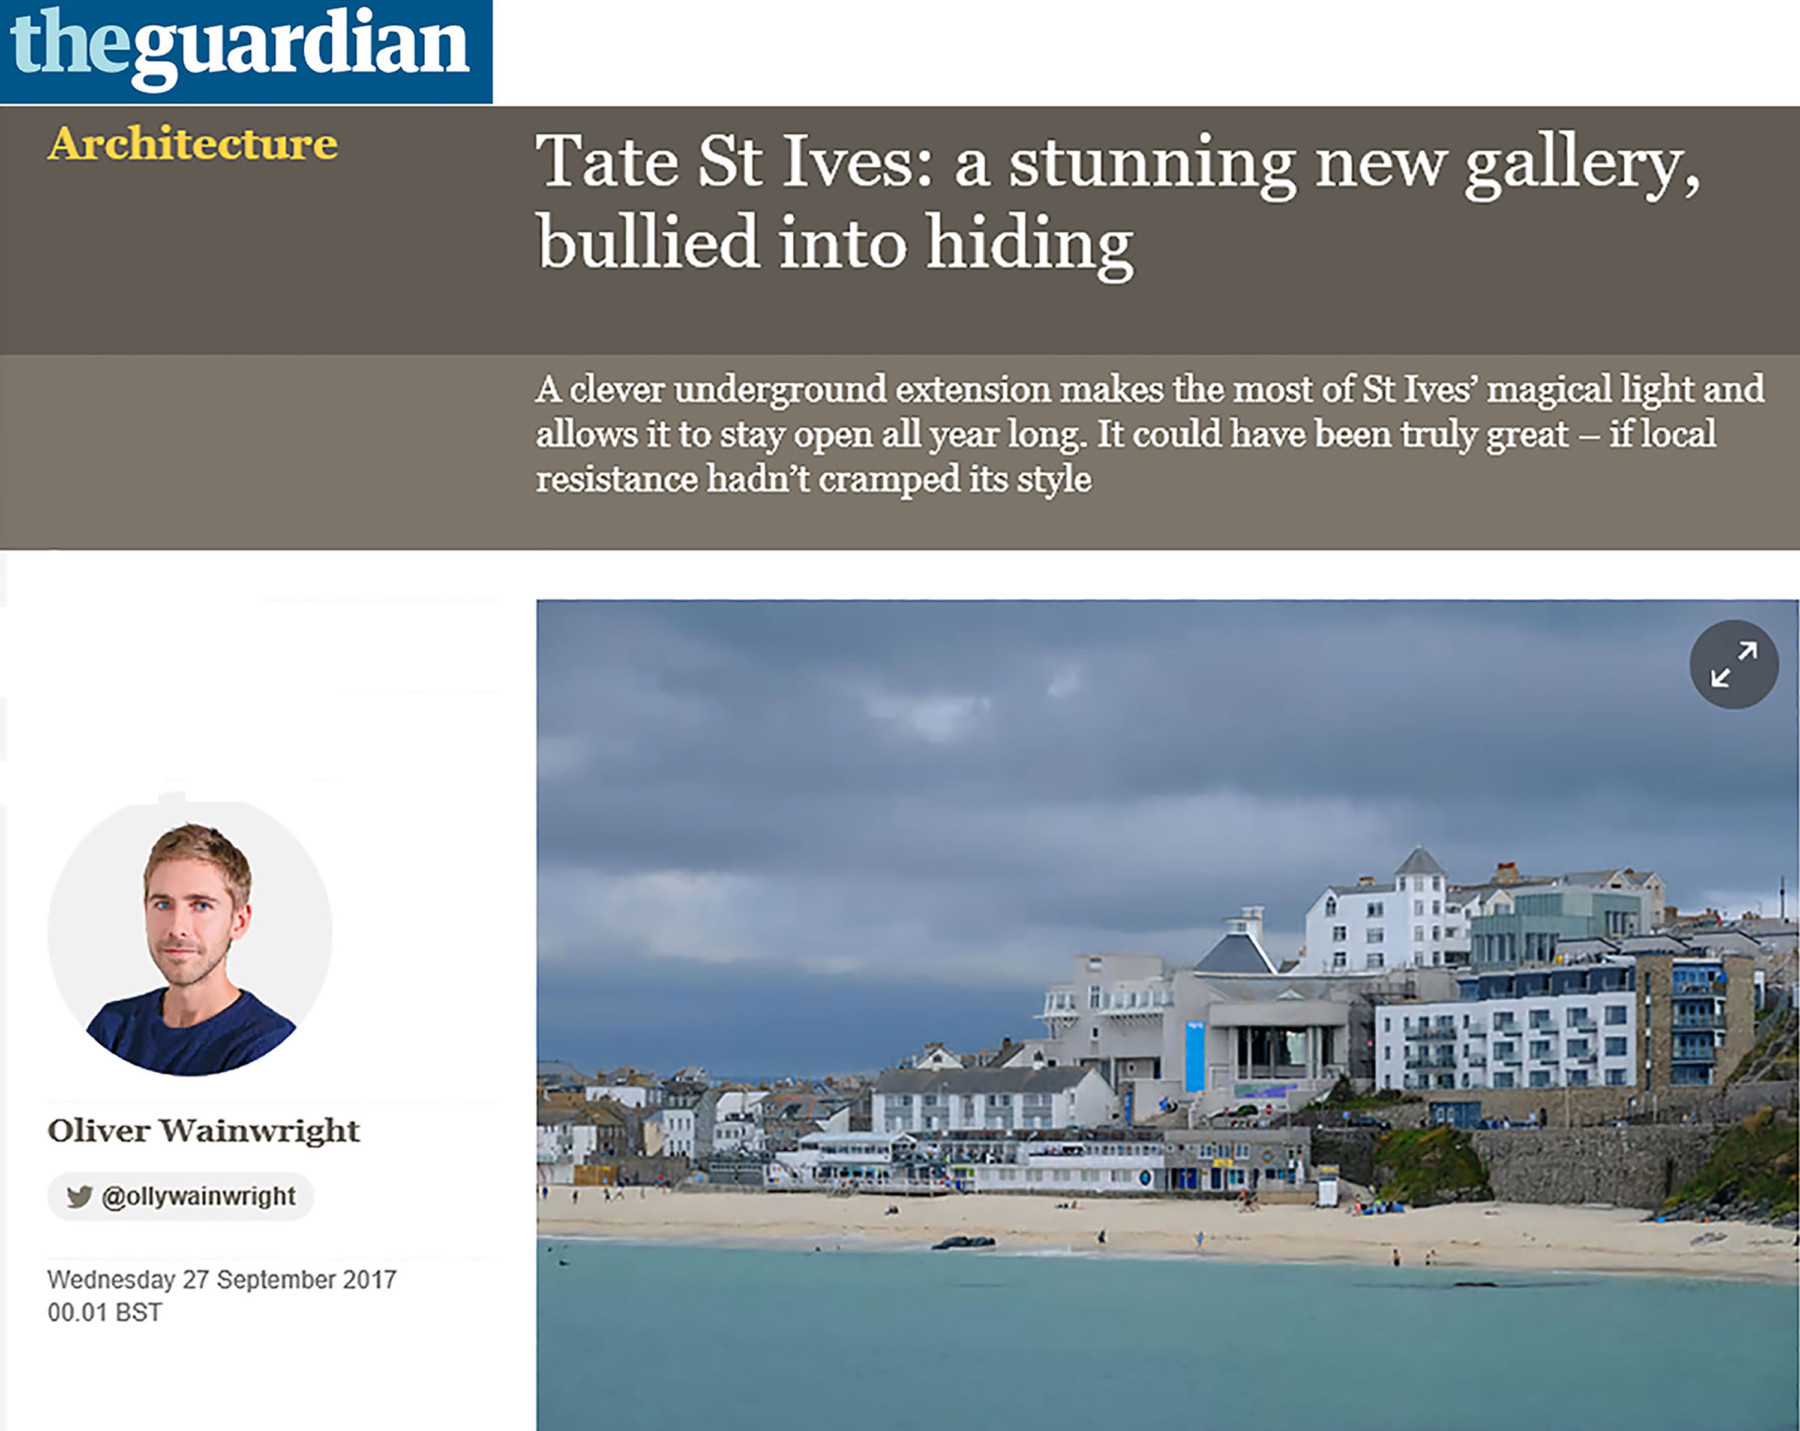 Jamie-Fobert-Architects-Guardian-Oliver-Wainwright-Online-Magazine-Tate-St-Ives-Cultural-Gallery-Modern-Contemporary-News-Project-Press-Article